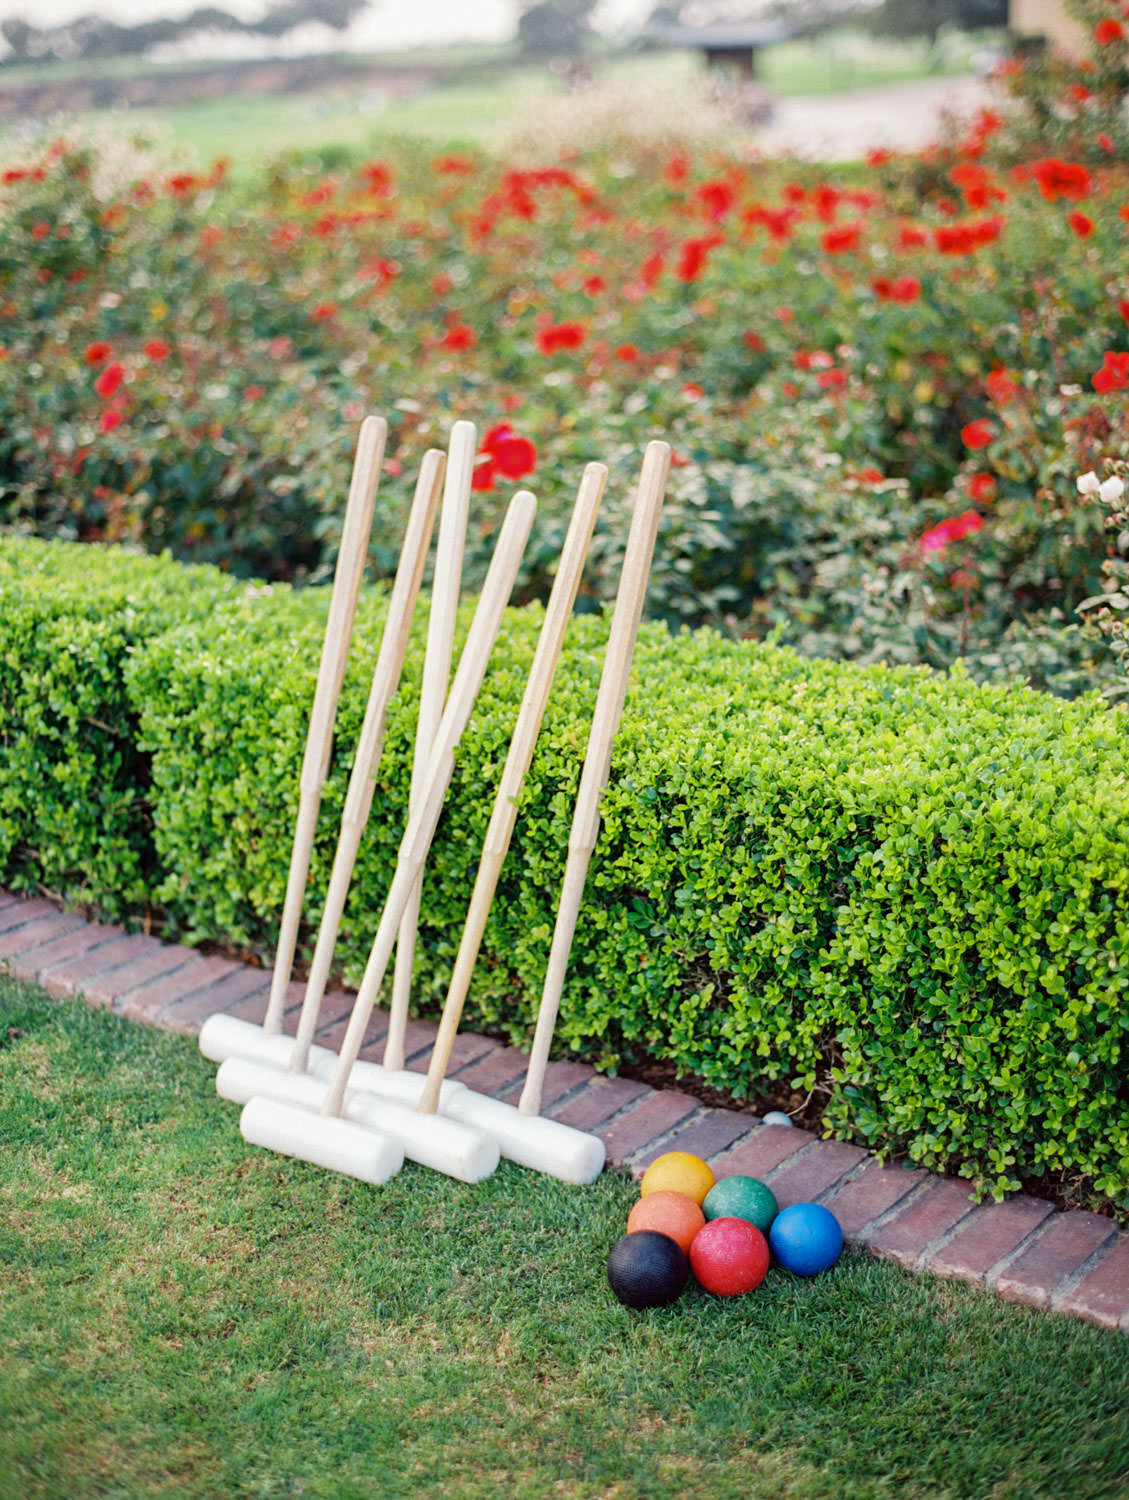 Croquet set during cocktail hour outside at a rustic upscale venue in San Diego, Lodge at Torrey Pines wedding, film photography by Cavin Elizabeth Photography